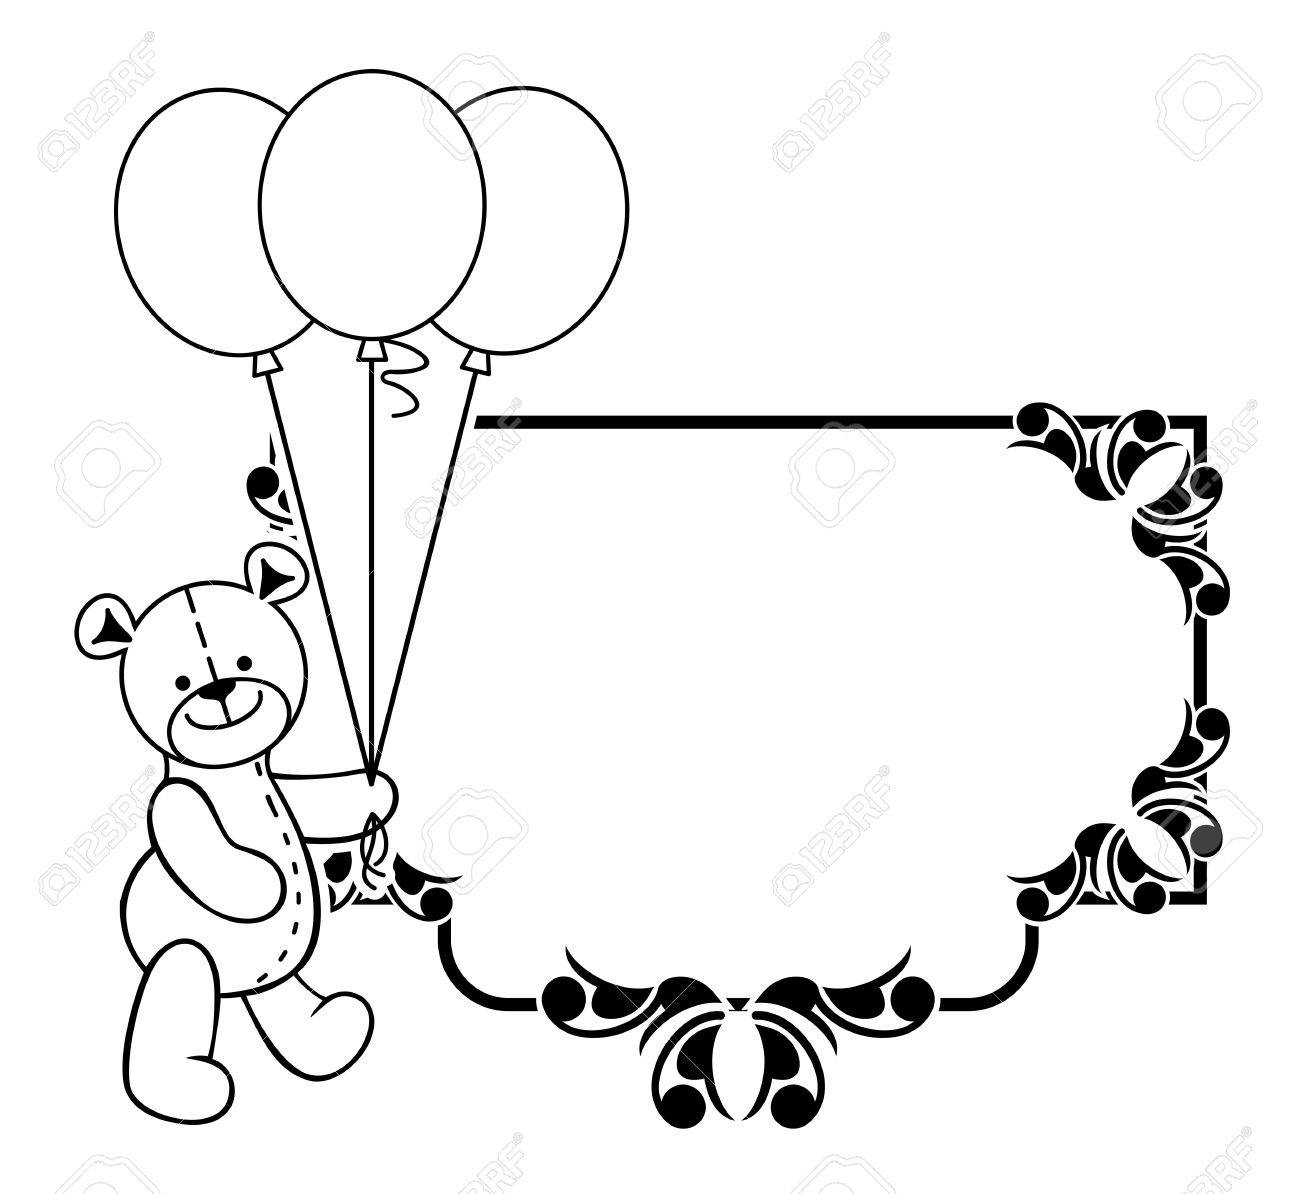 black and white frame with teddy bear plush toy vector clip rh 123rf com bear clipart black and white polar bear clipart black and white